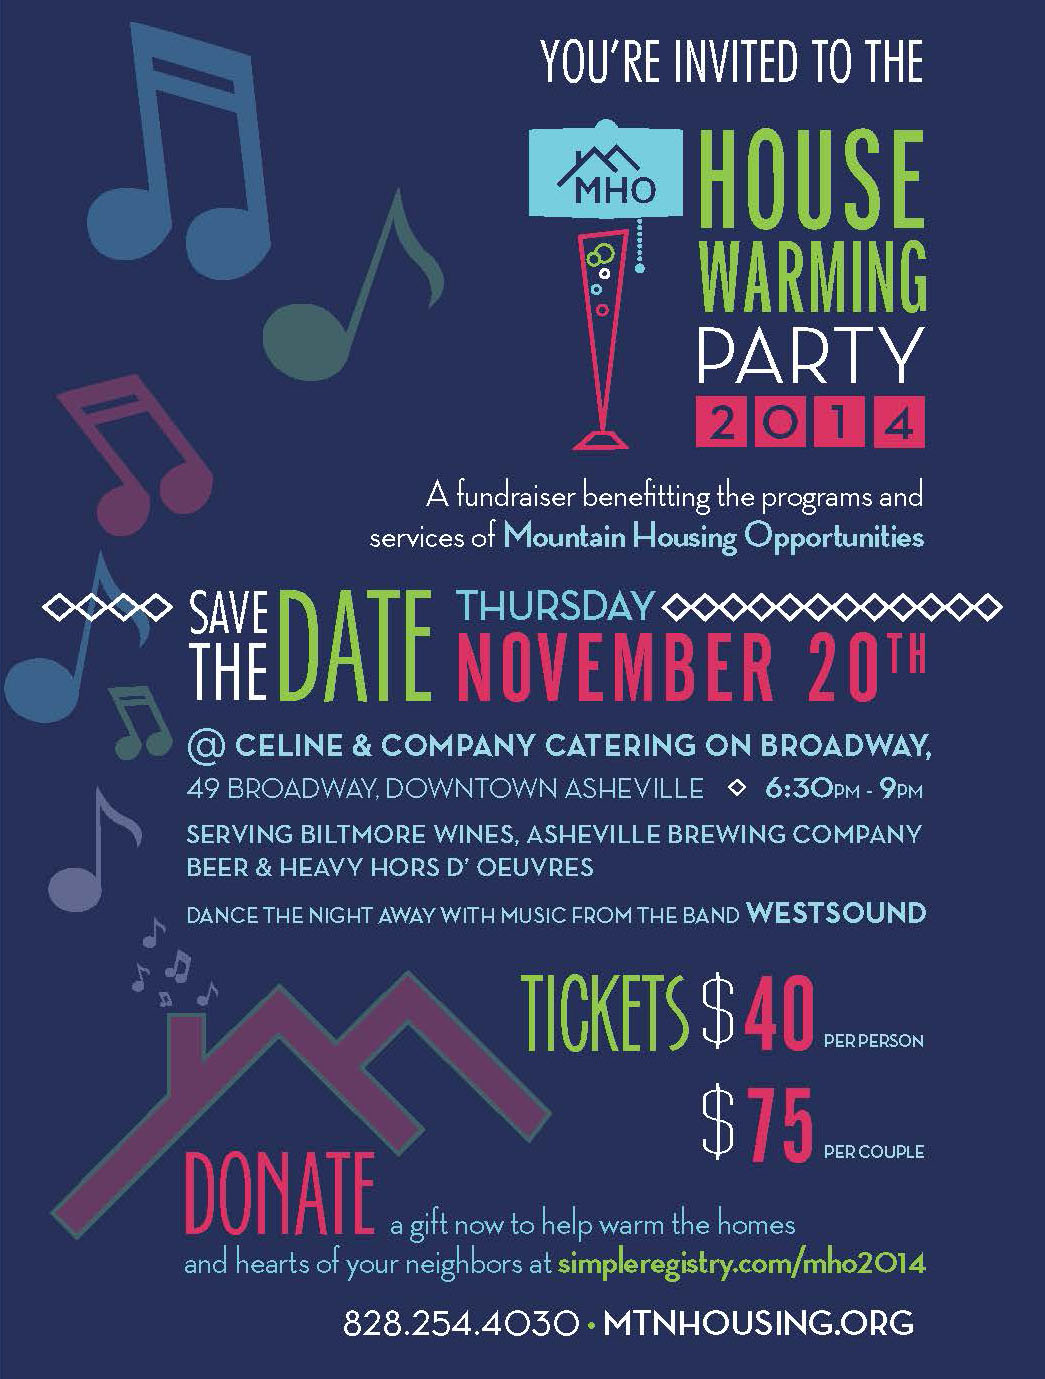 Save The Date For MHO's House Warming Party – November 20th